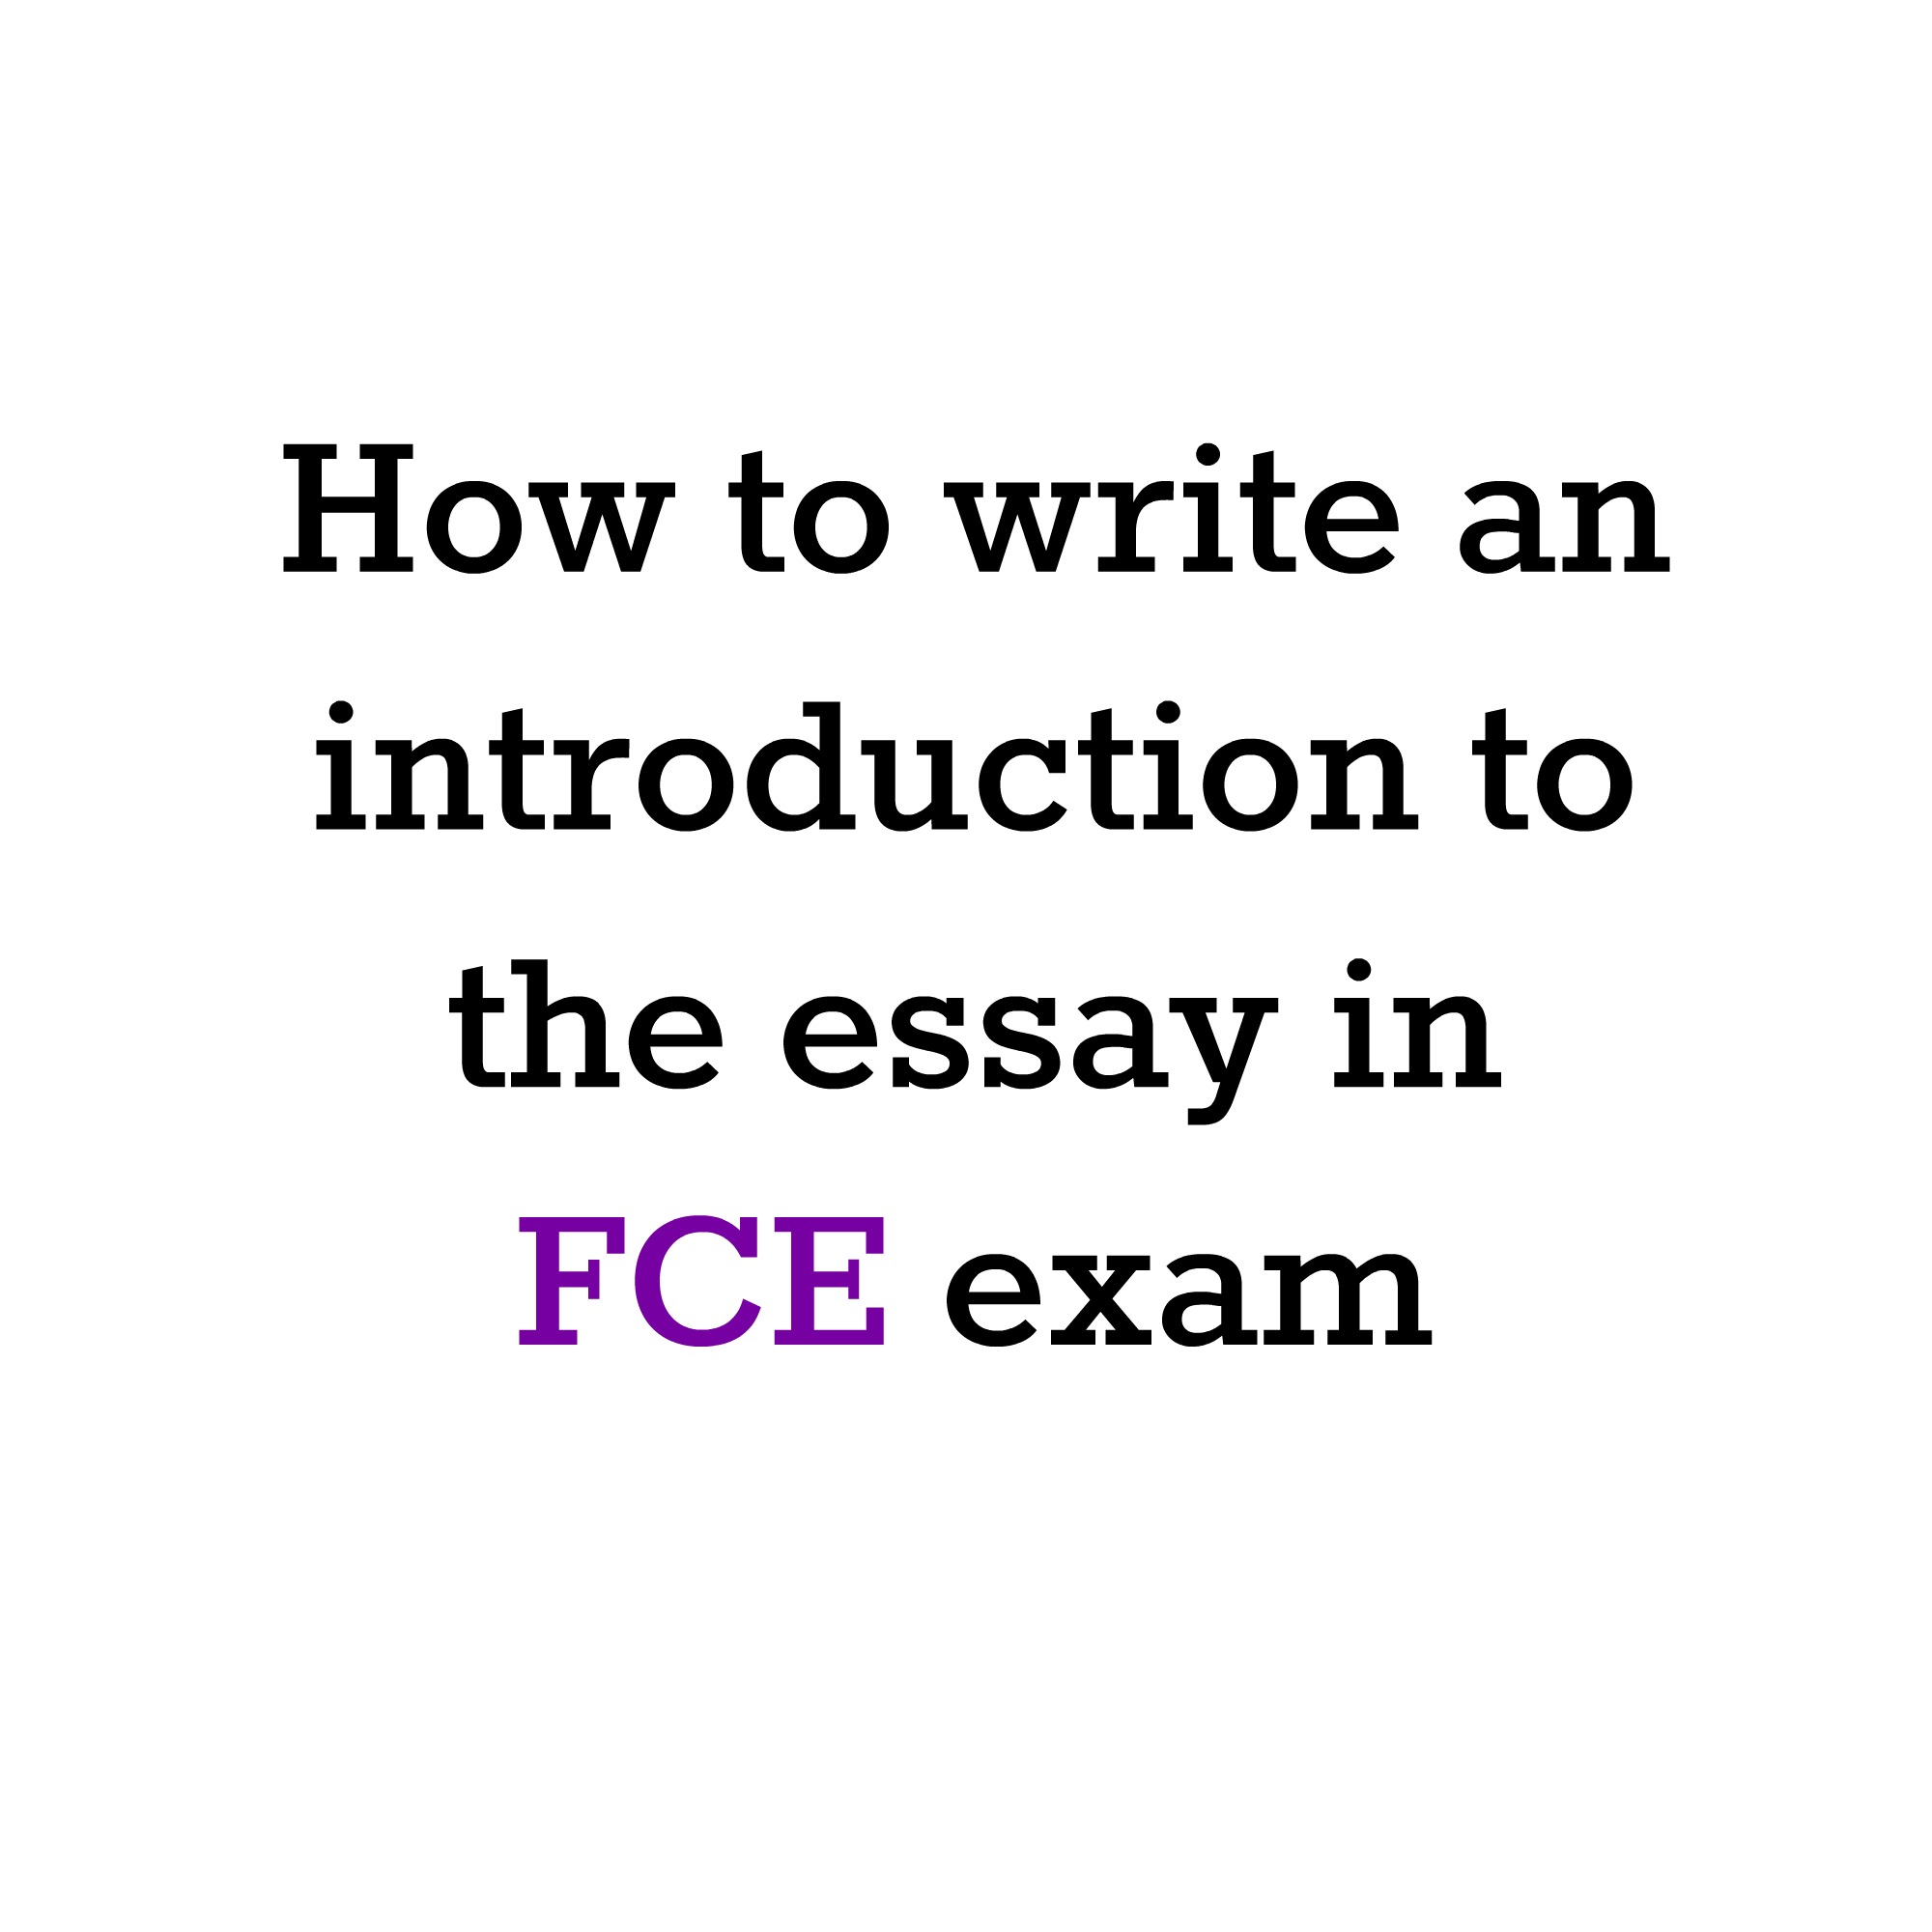 How to do an introduction for an essay